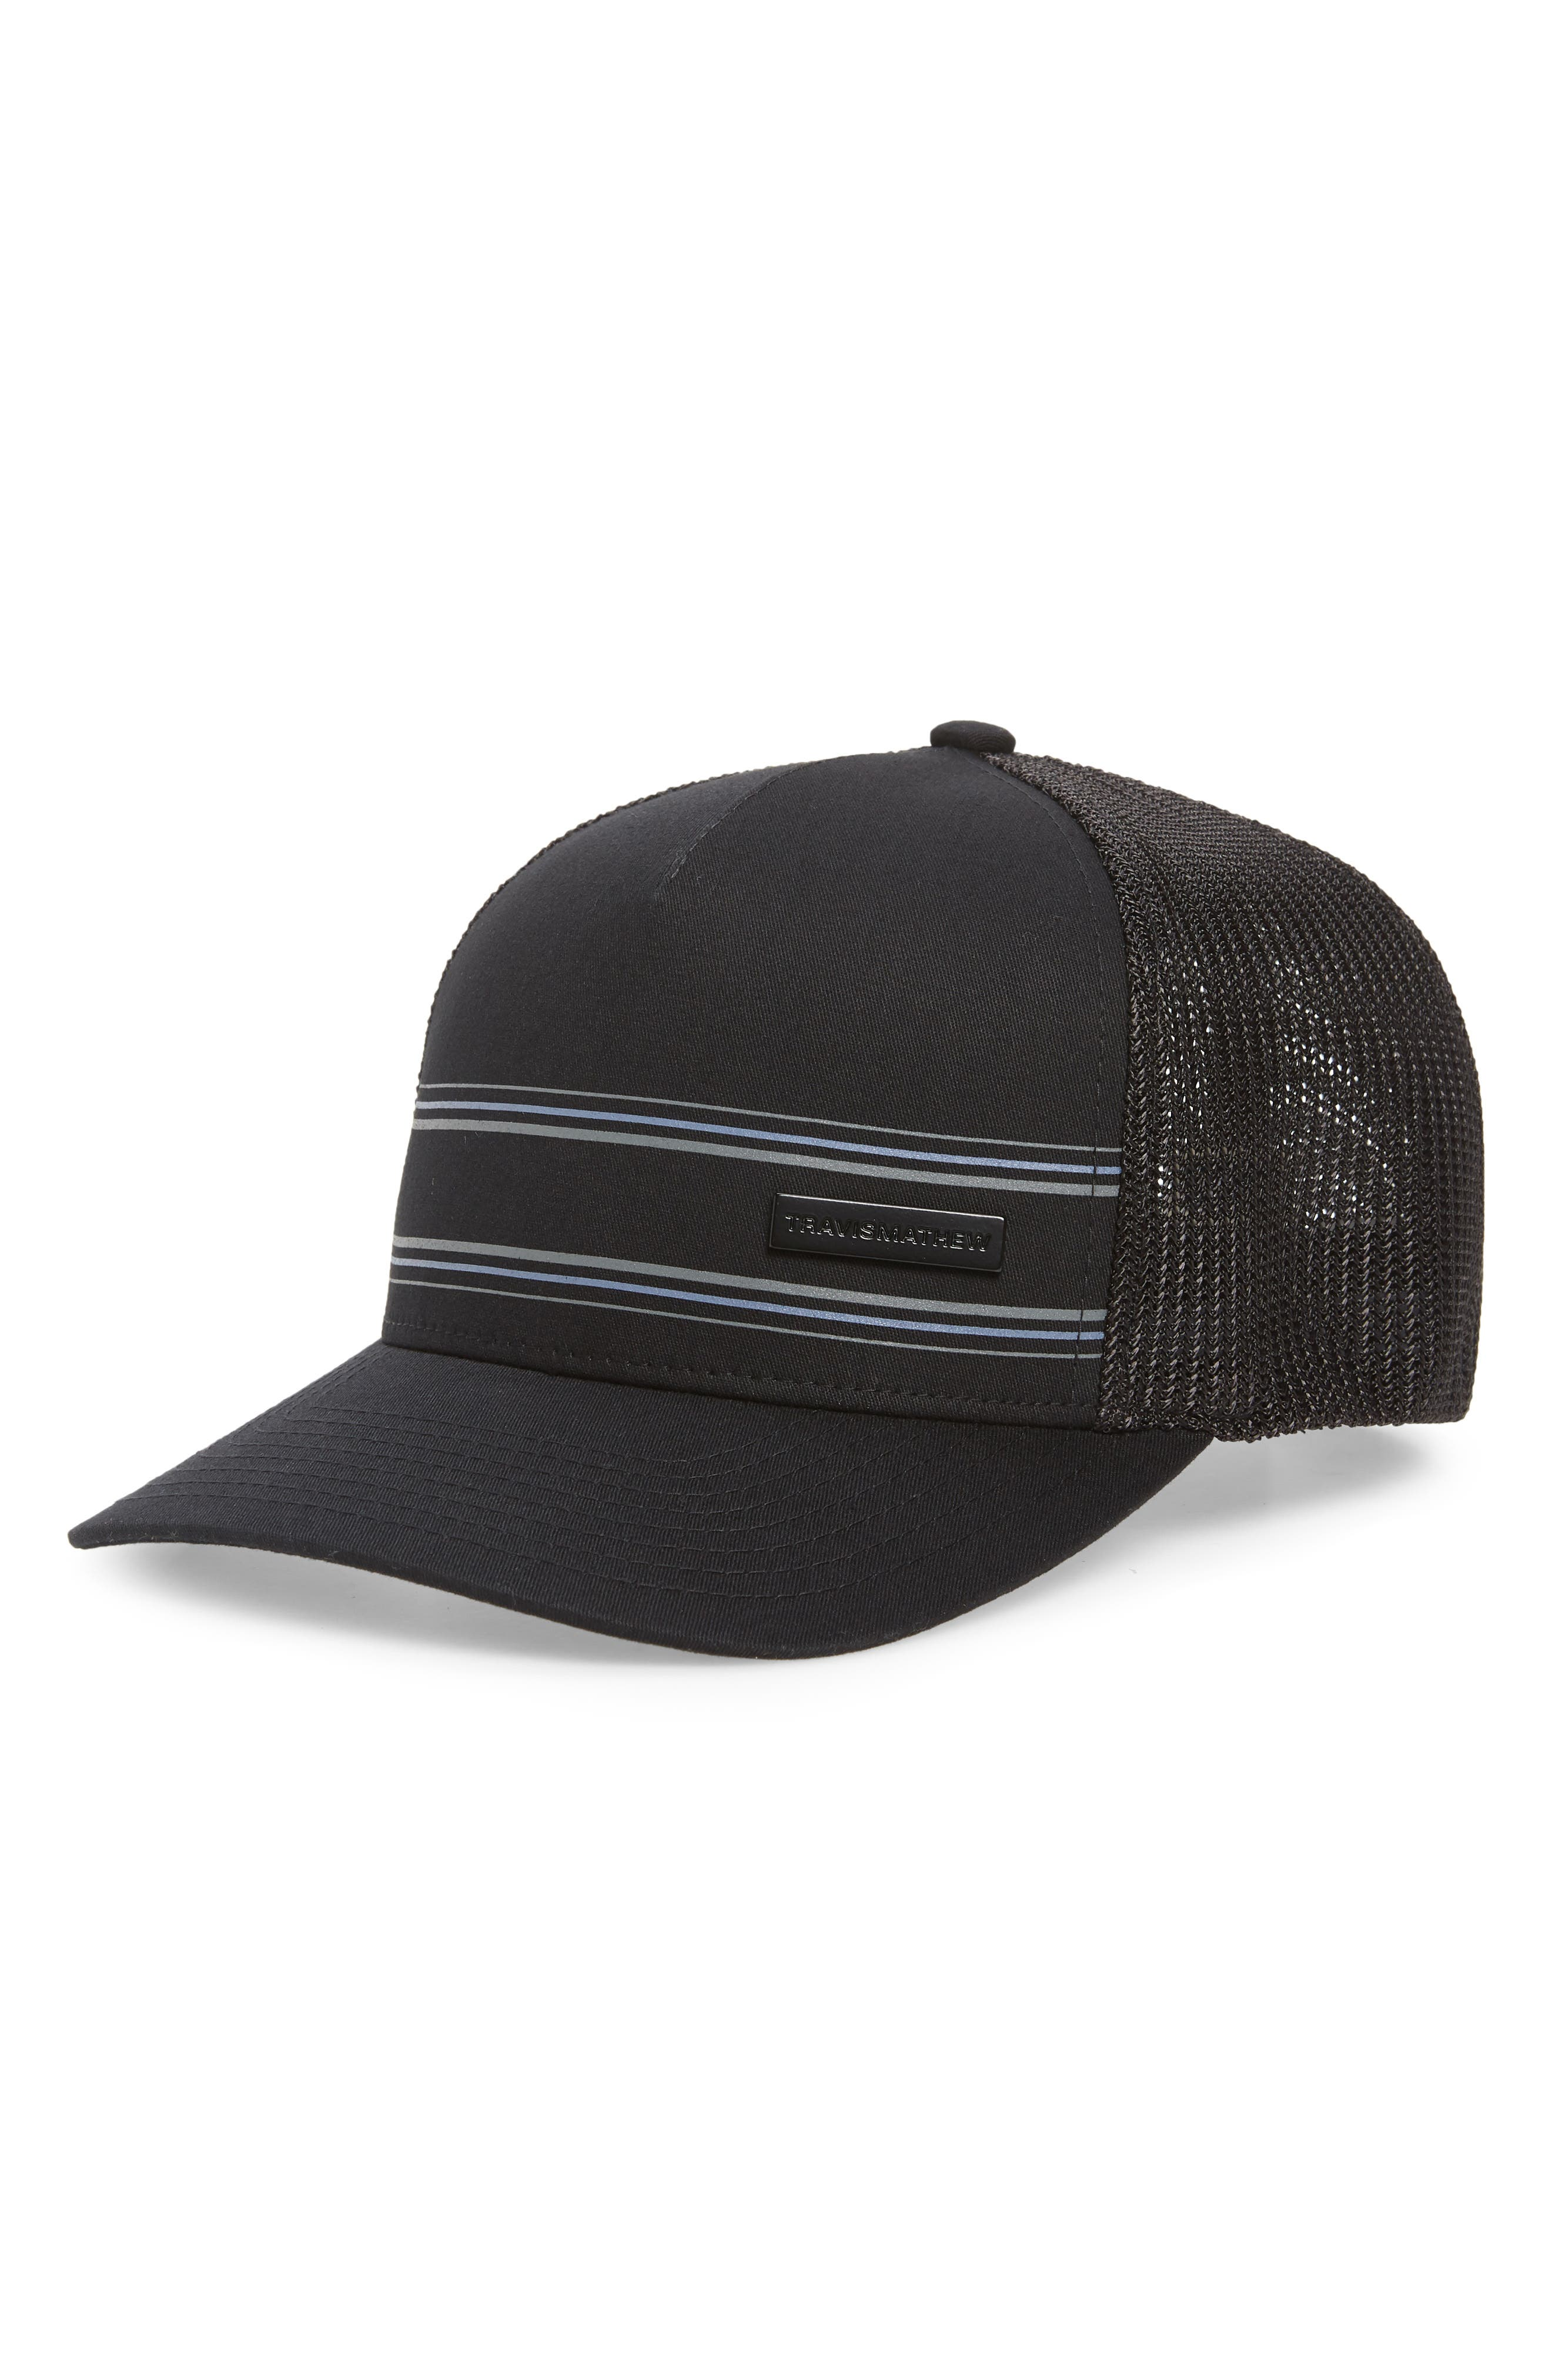 Sharp stripes punch up a golfer\\\'s hat with mesh at the back for cool comfort. Style Name: Travismathew Free Dive Trucker Hat. Style Number: 6127841. Available in stores.